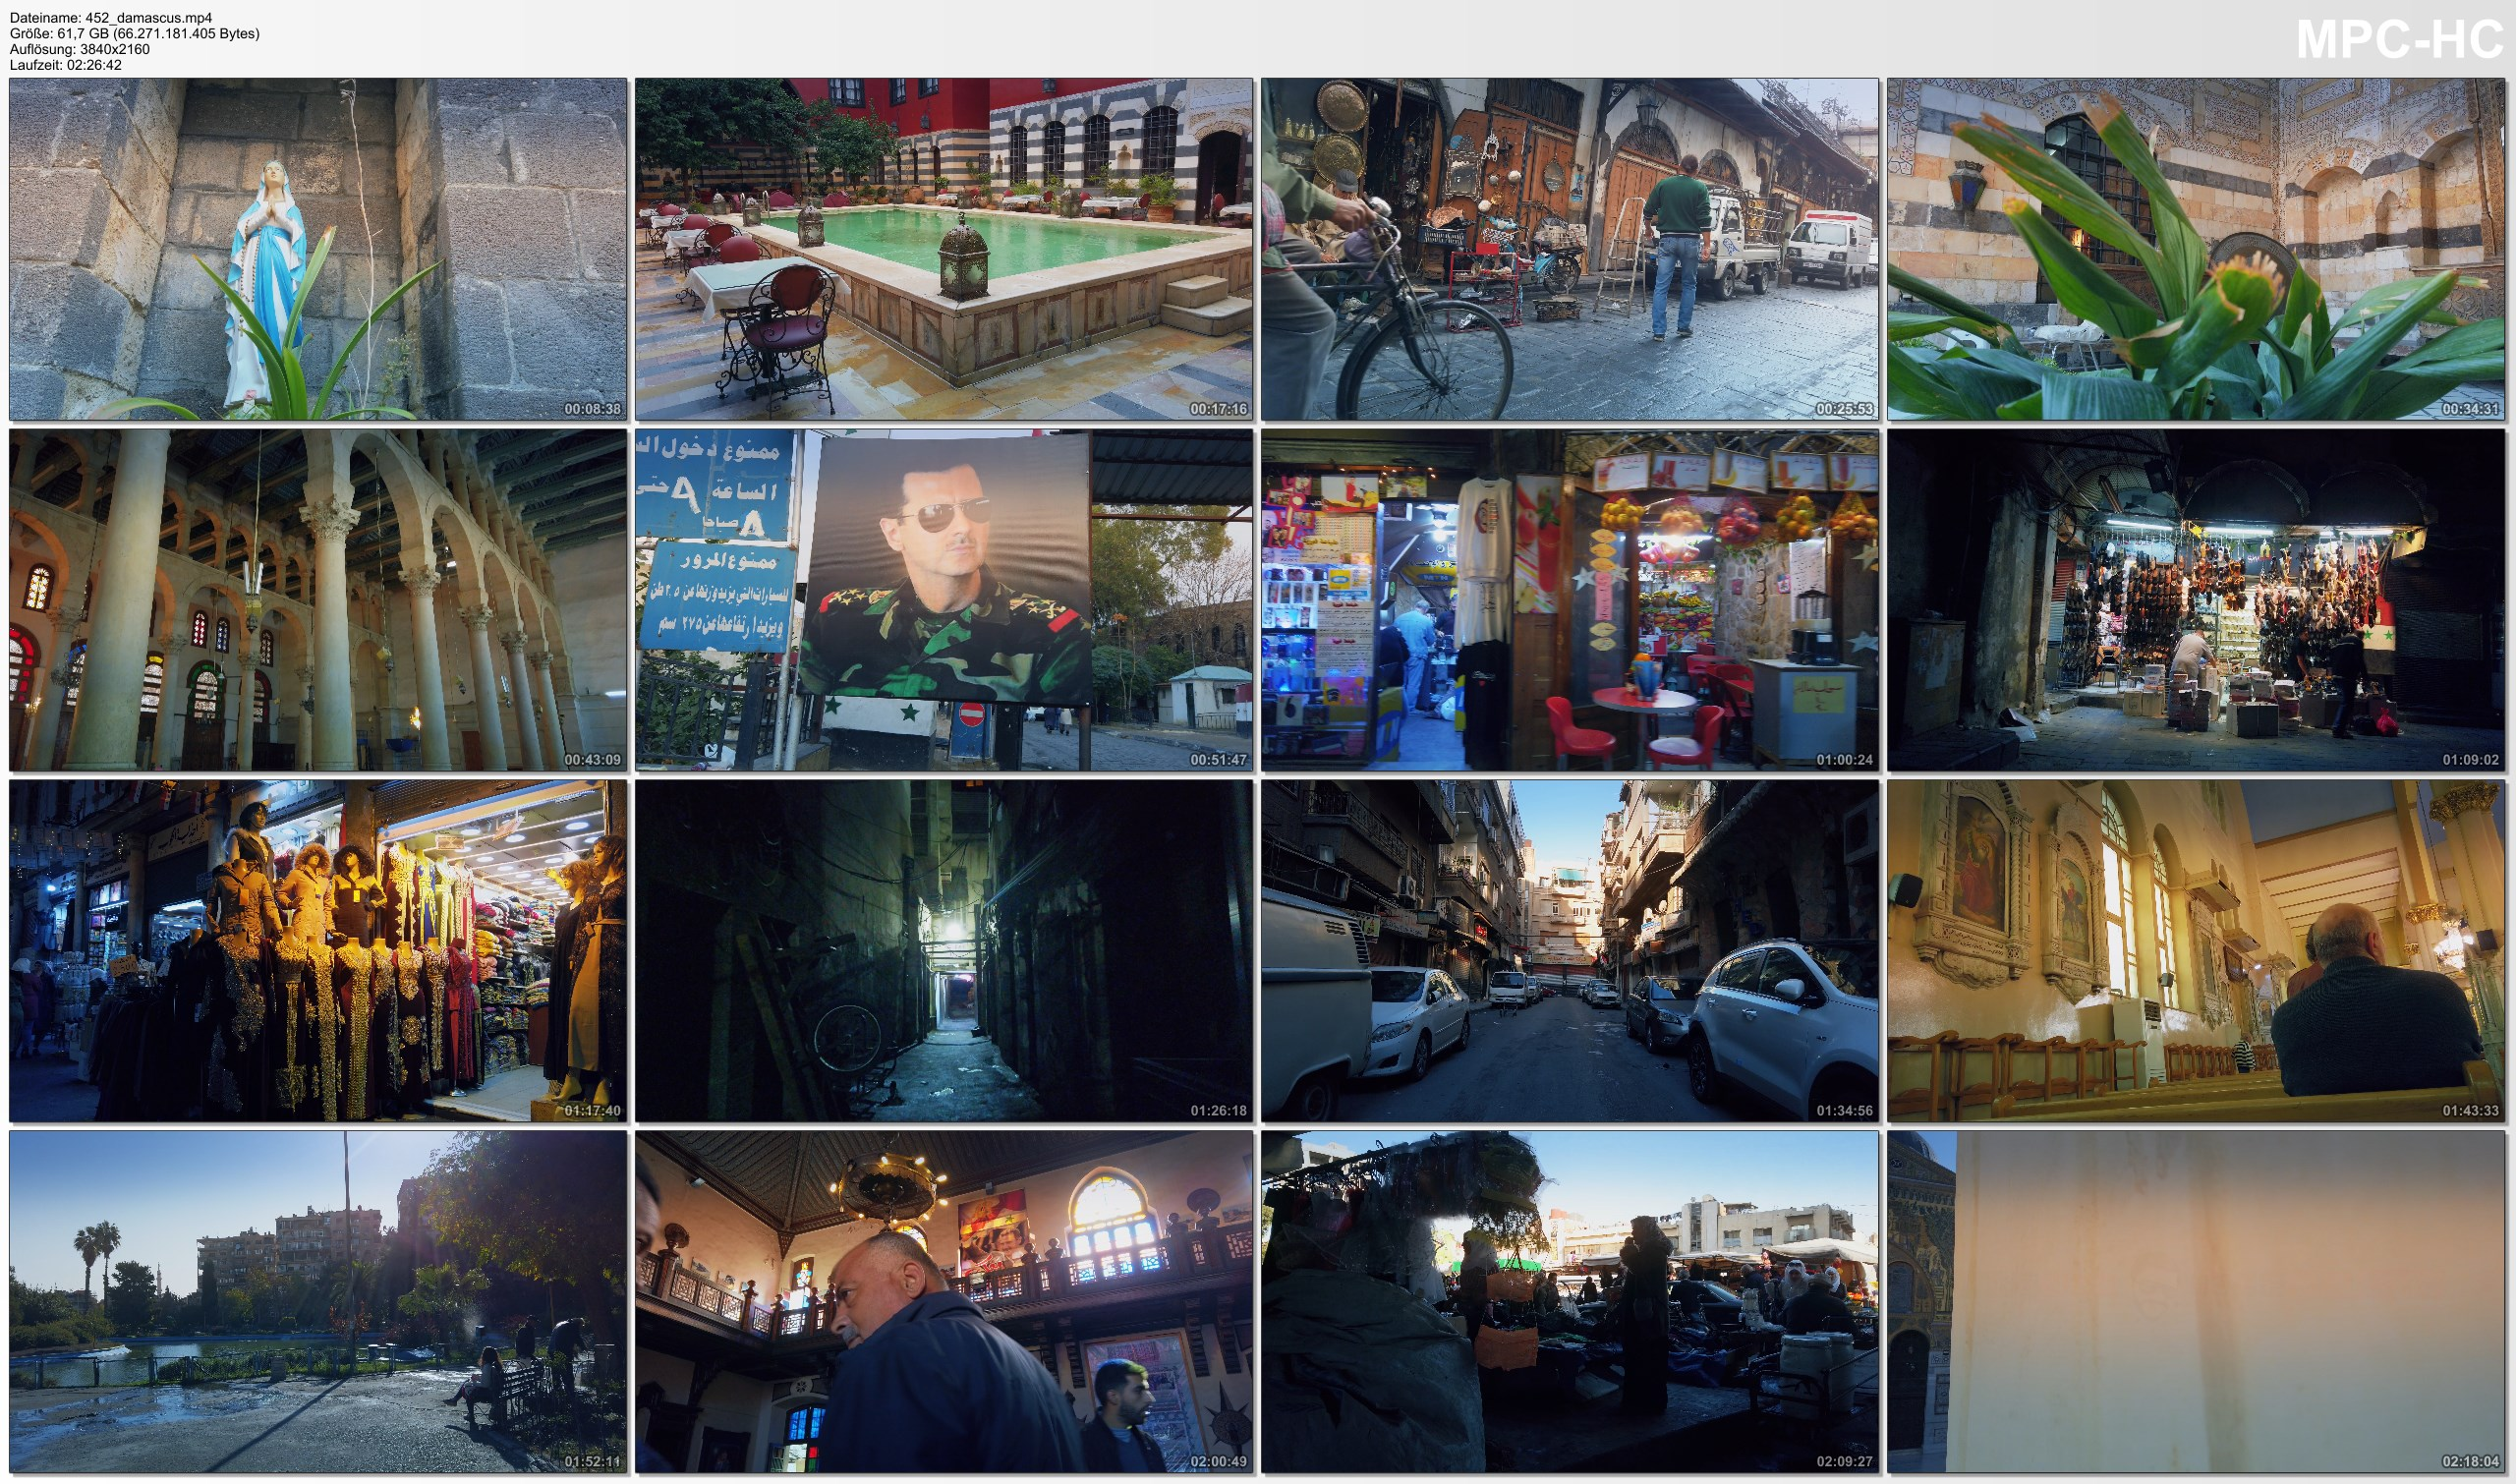 Pictures from Video 【4K】Footage | Walking Through Damascus - SYRIA 2020 | Capital City Tour Guide | Street Scenes UNCUT